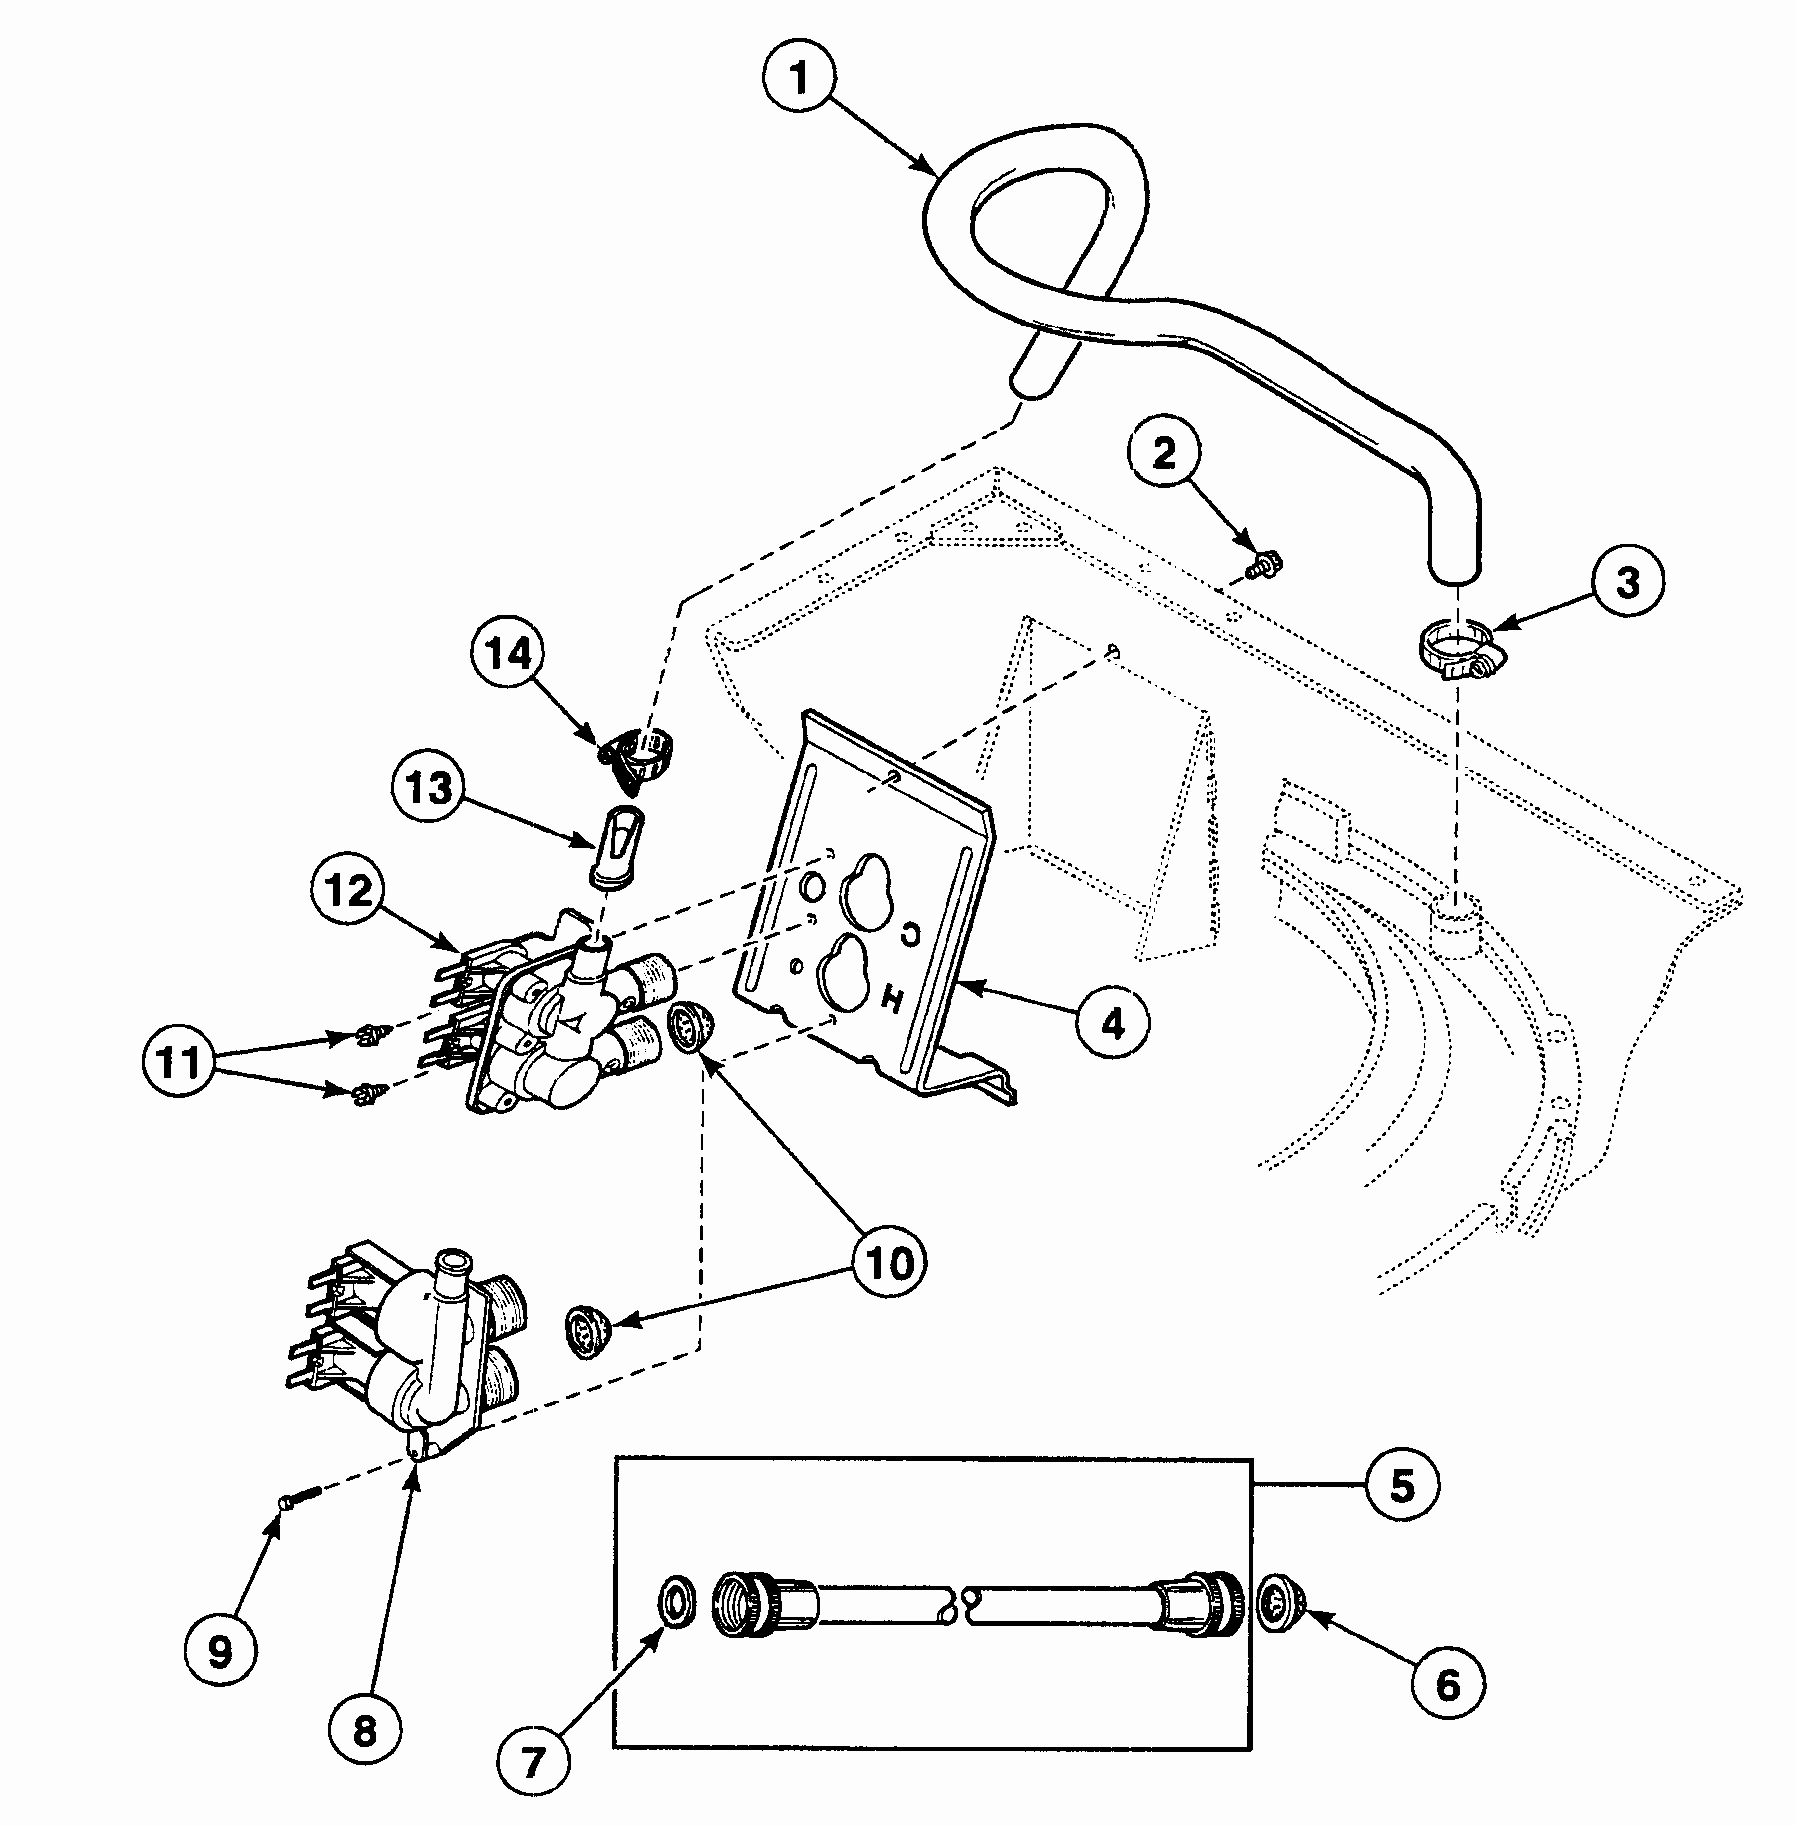 Washer Drawing At Free For Personal Use Speed Queen Washing Machine Wiring Diagram 1796x1825 Parts Idsc2013